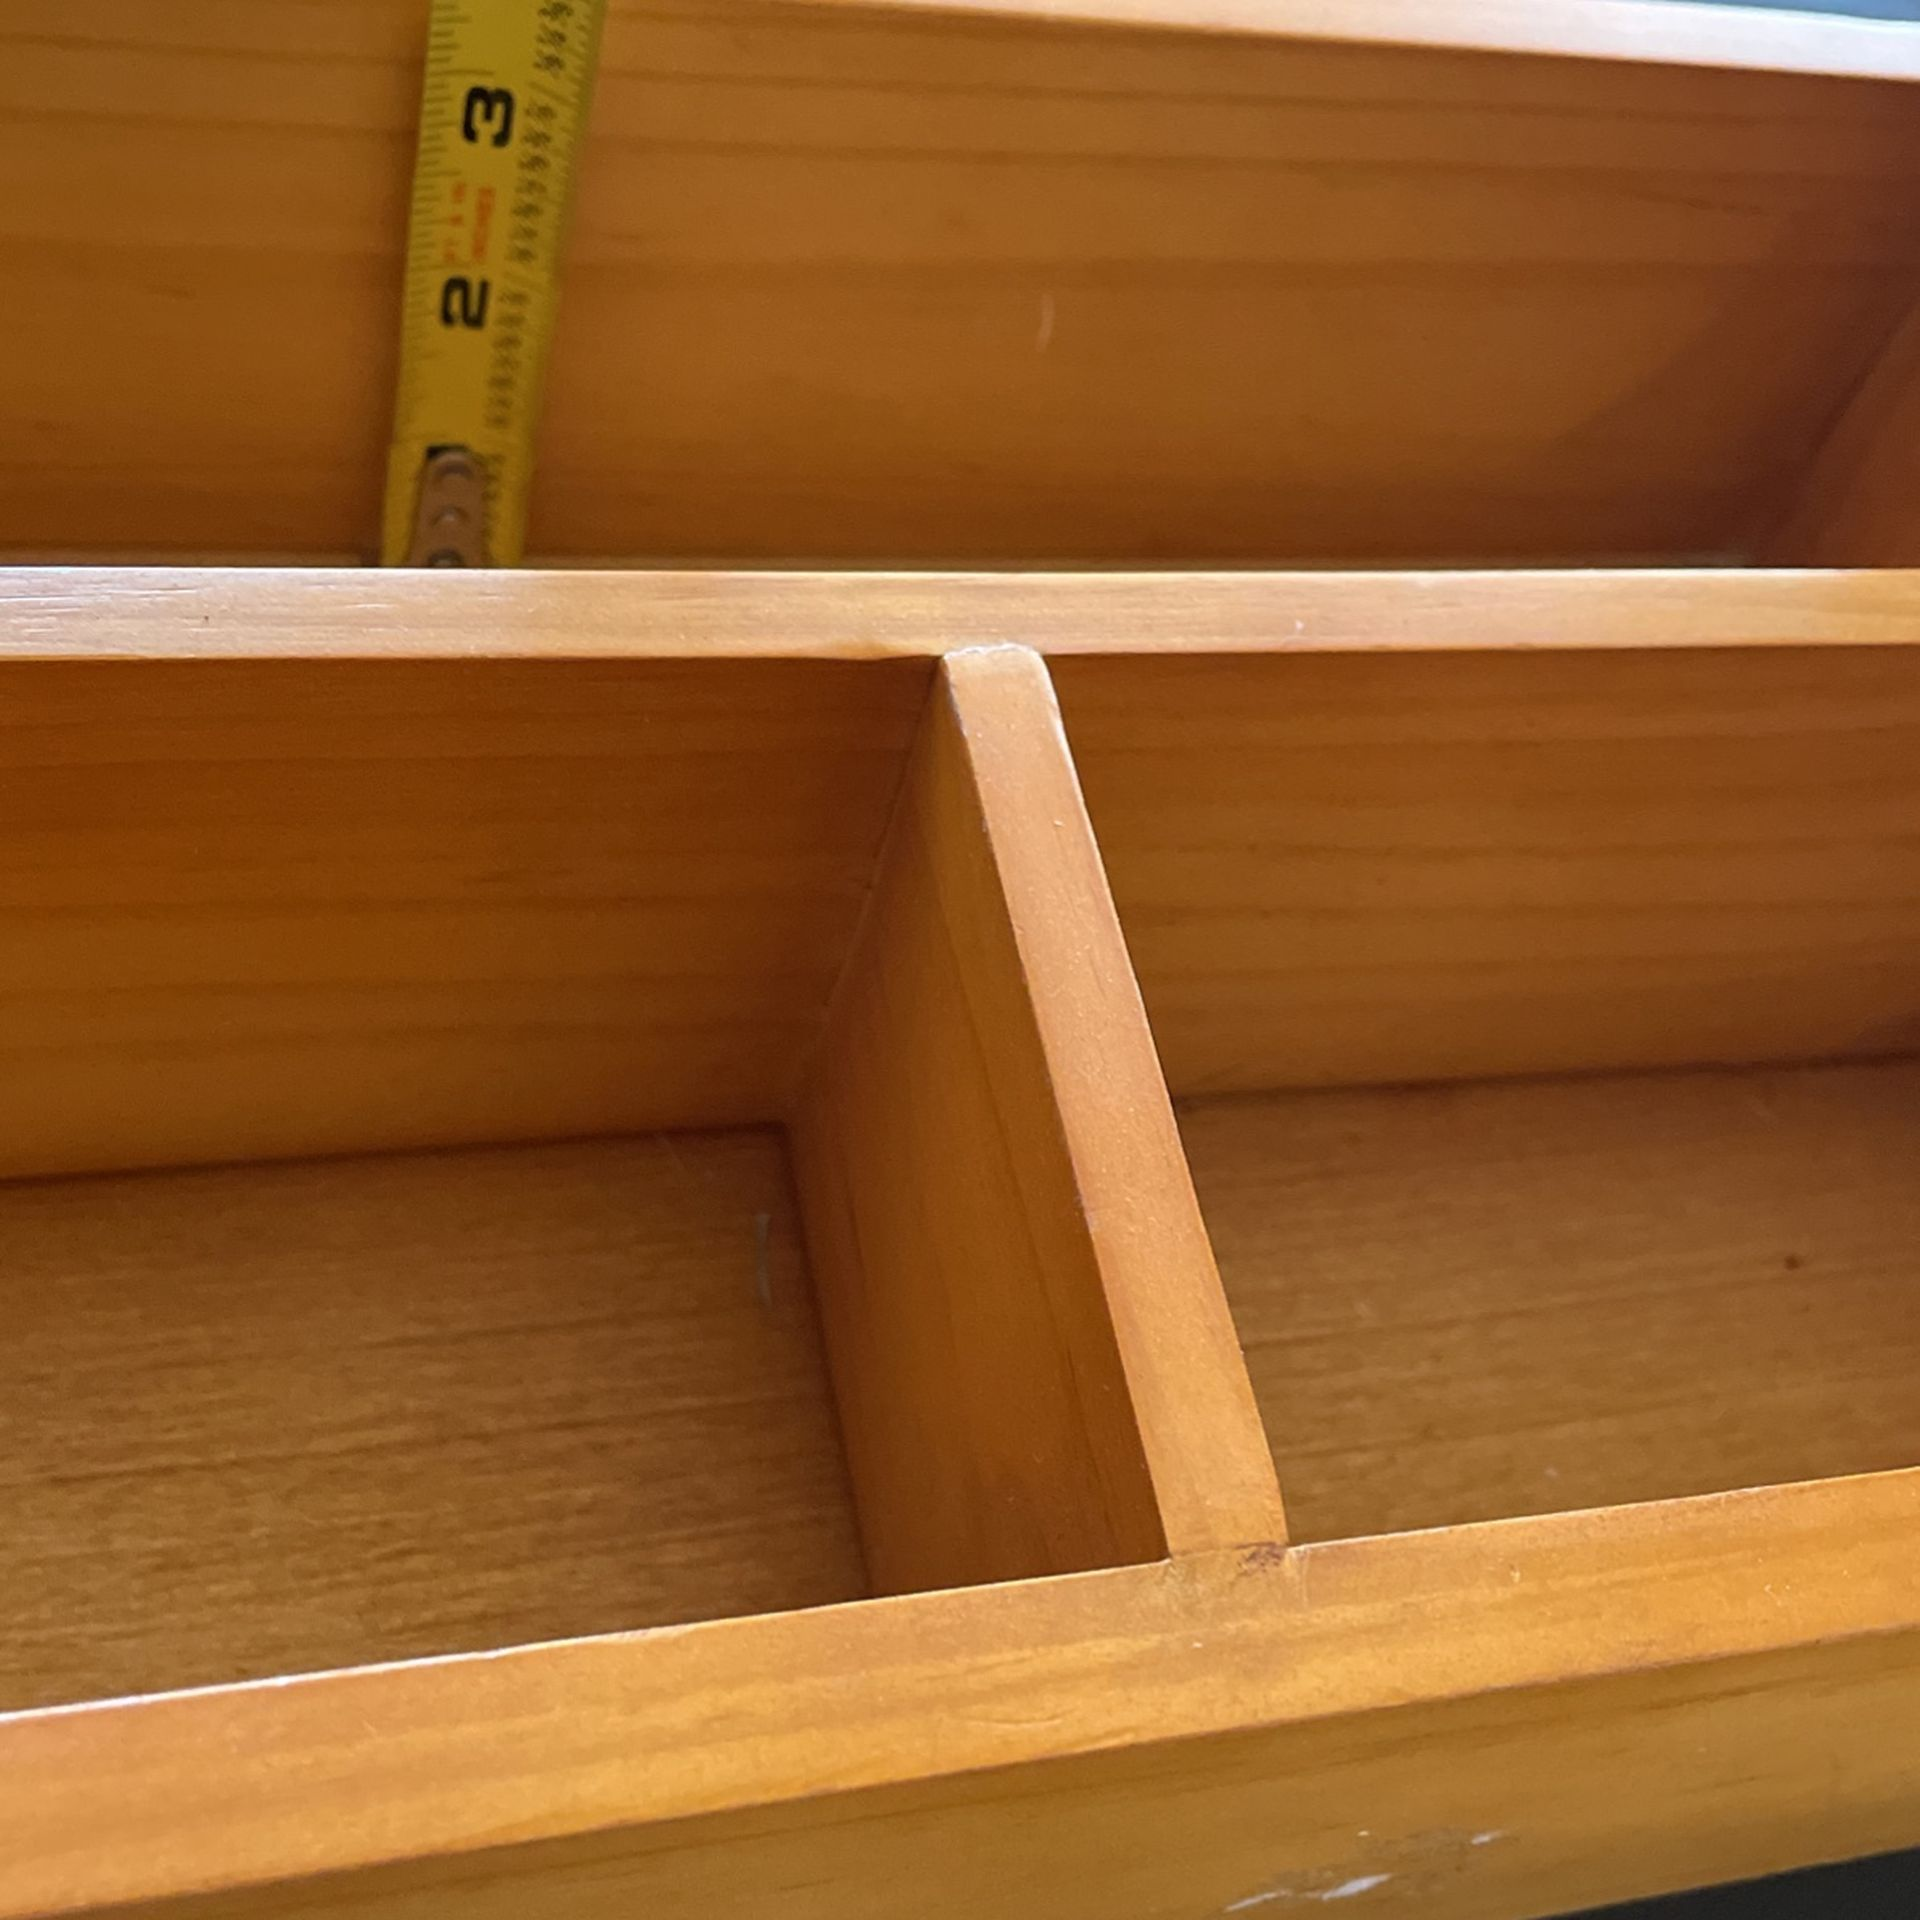 Large Wooden Caddy Perfect For Decoration, Tools, Horse Tack, Kitchen Organization Etc